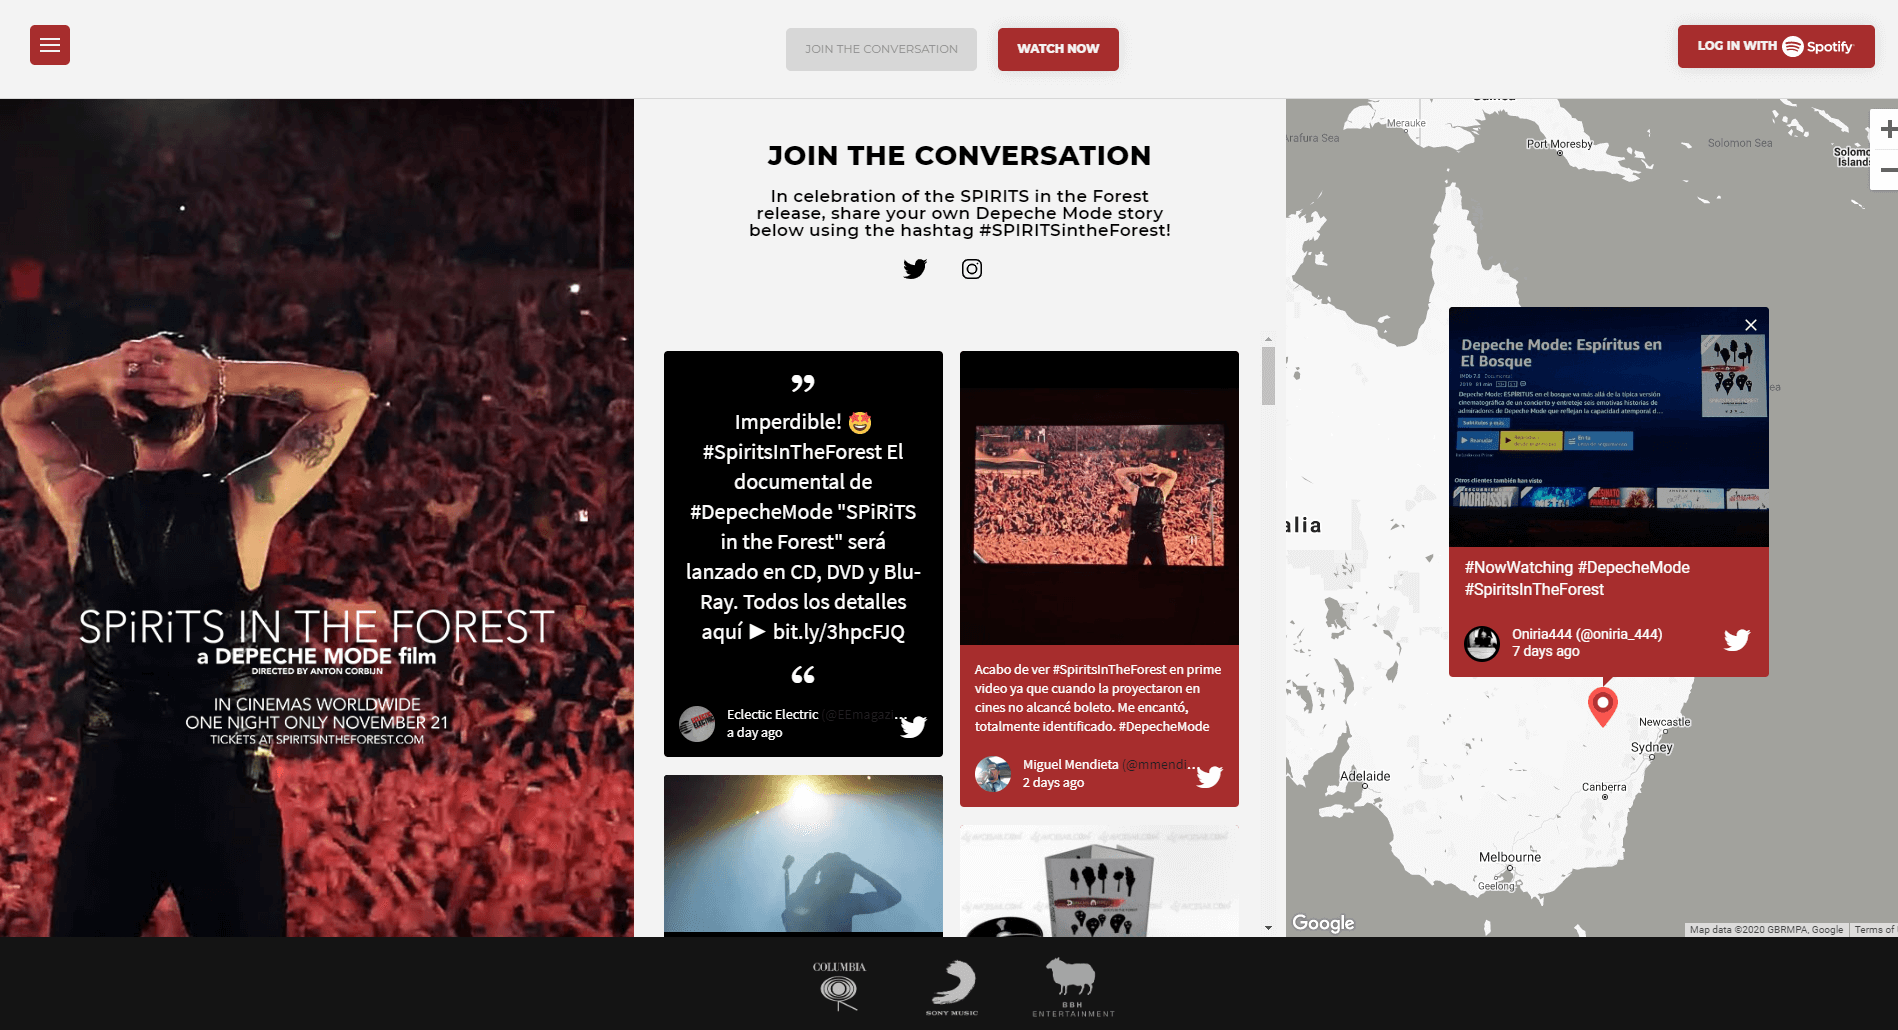 """The Spirits in the Forest website, split in three columns. On the left, a photo showing one of the band members from behind as he's standing facing the crowd at a concert. A text overlay advertises the movie launch. In the middle, the social media wall is embedded under the heading """"JOIN THE CONVERSATION"""", encouraging fans to post on Twitter and Instagram using the #SPIRITSintheForest hashtag. In the right column, the social wall is embedded again but with the map theme, showing content being posted from Australia."""